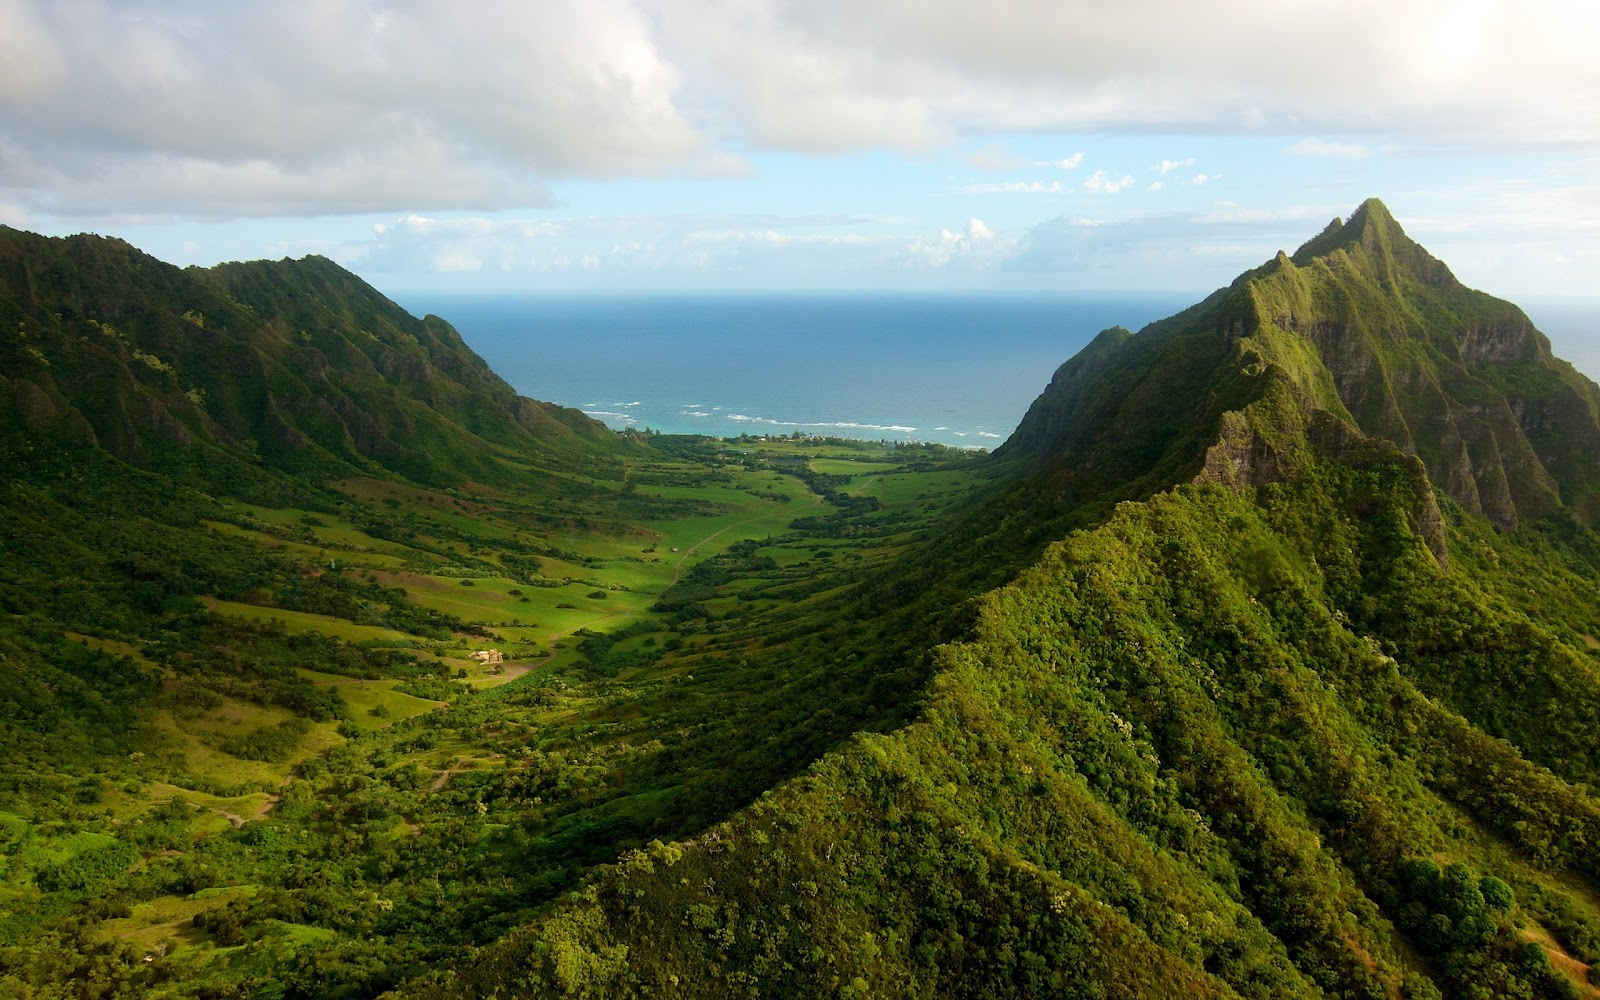 Hawaii hd nature wallpaper